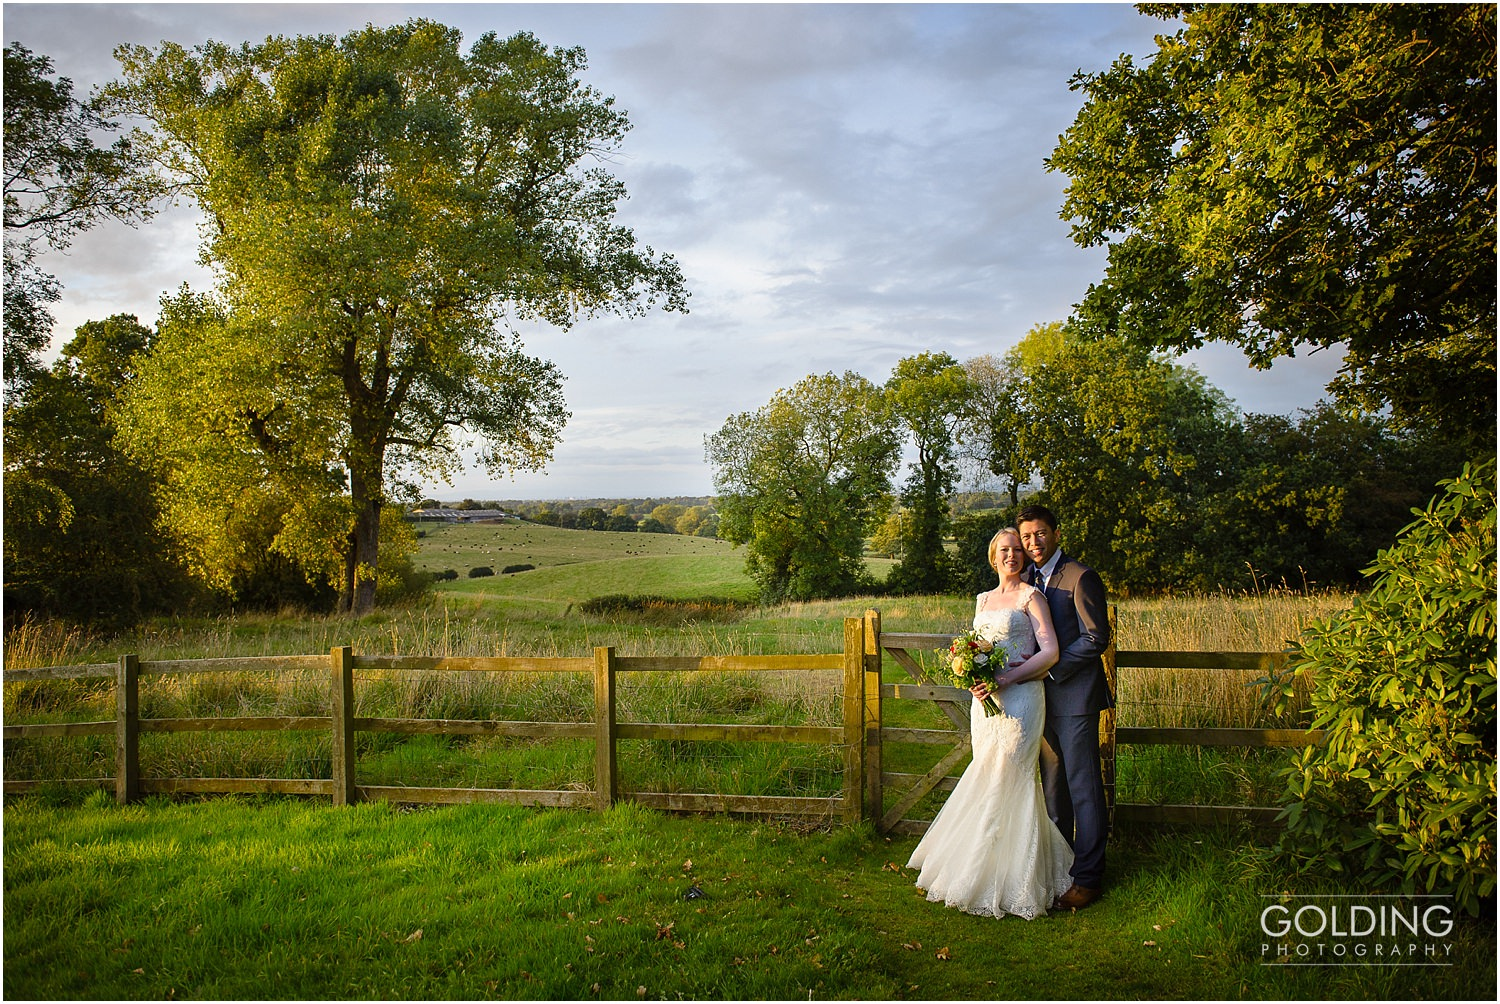 Jenna and Ben's wedding at Hilltop Country House